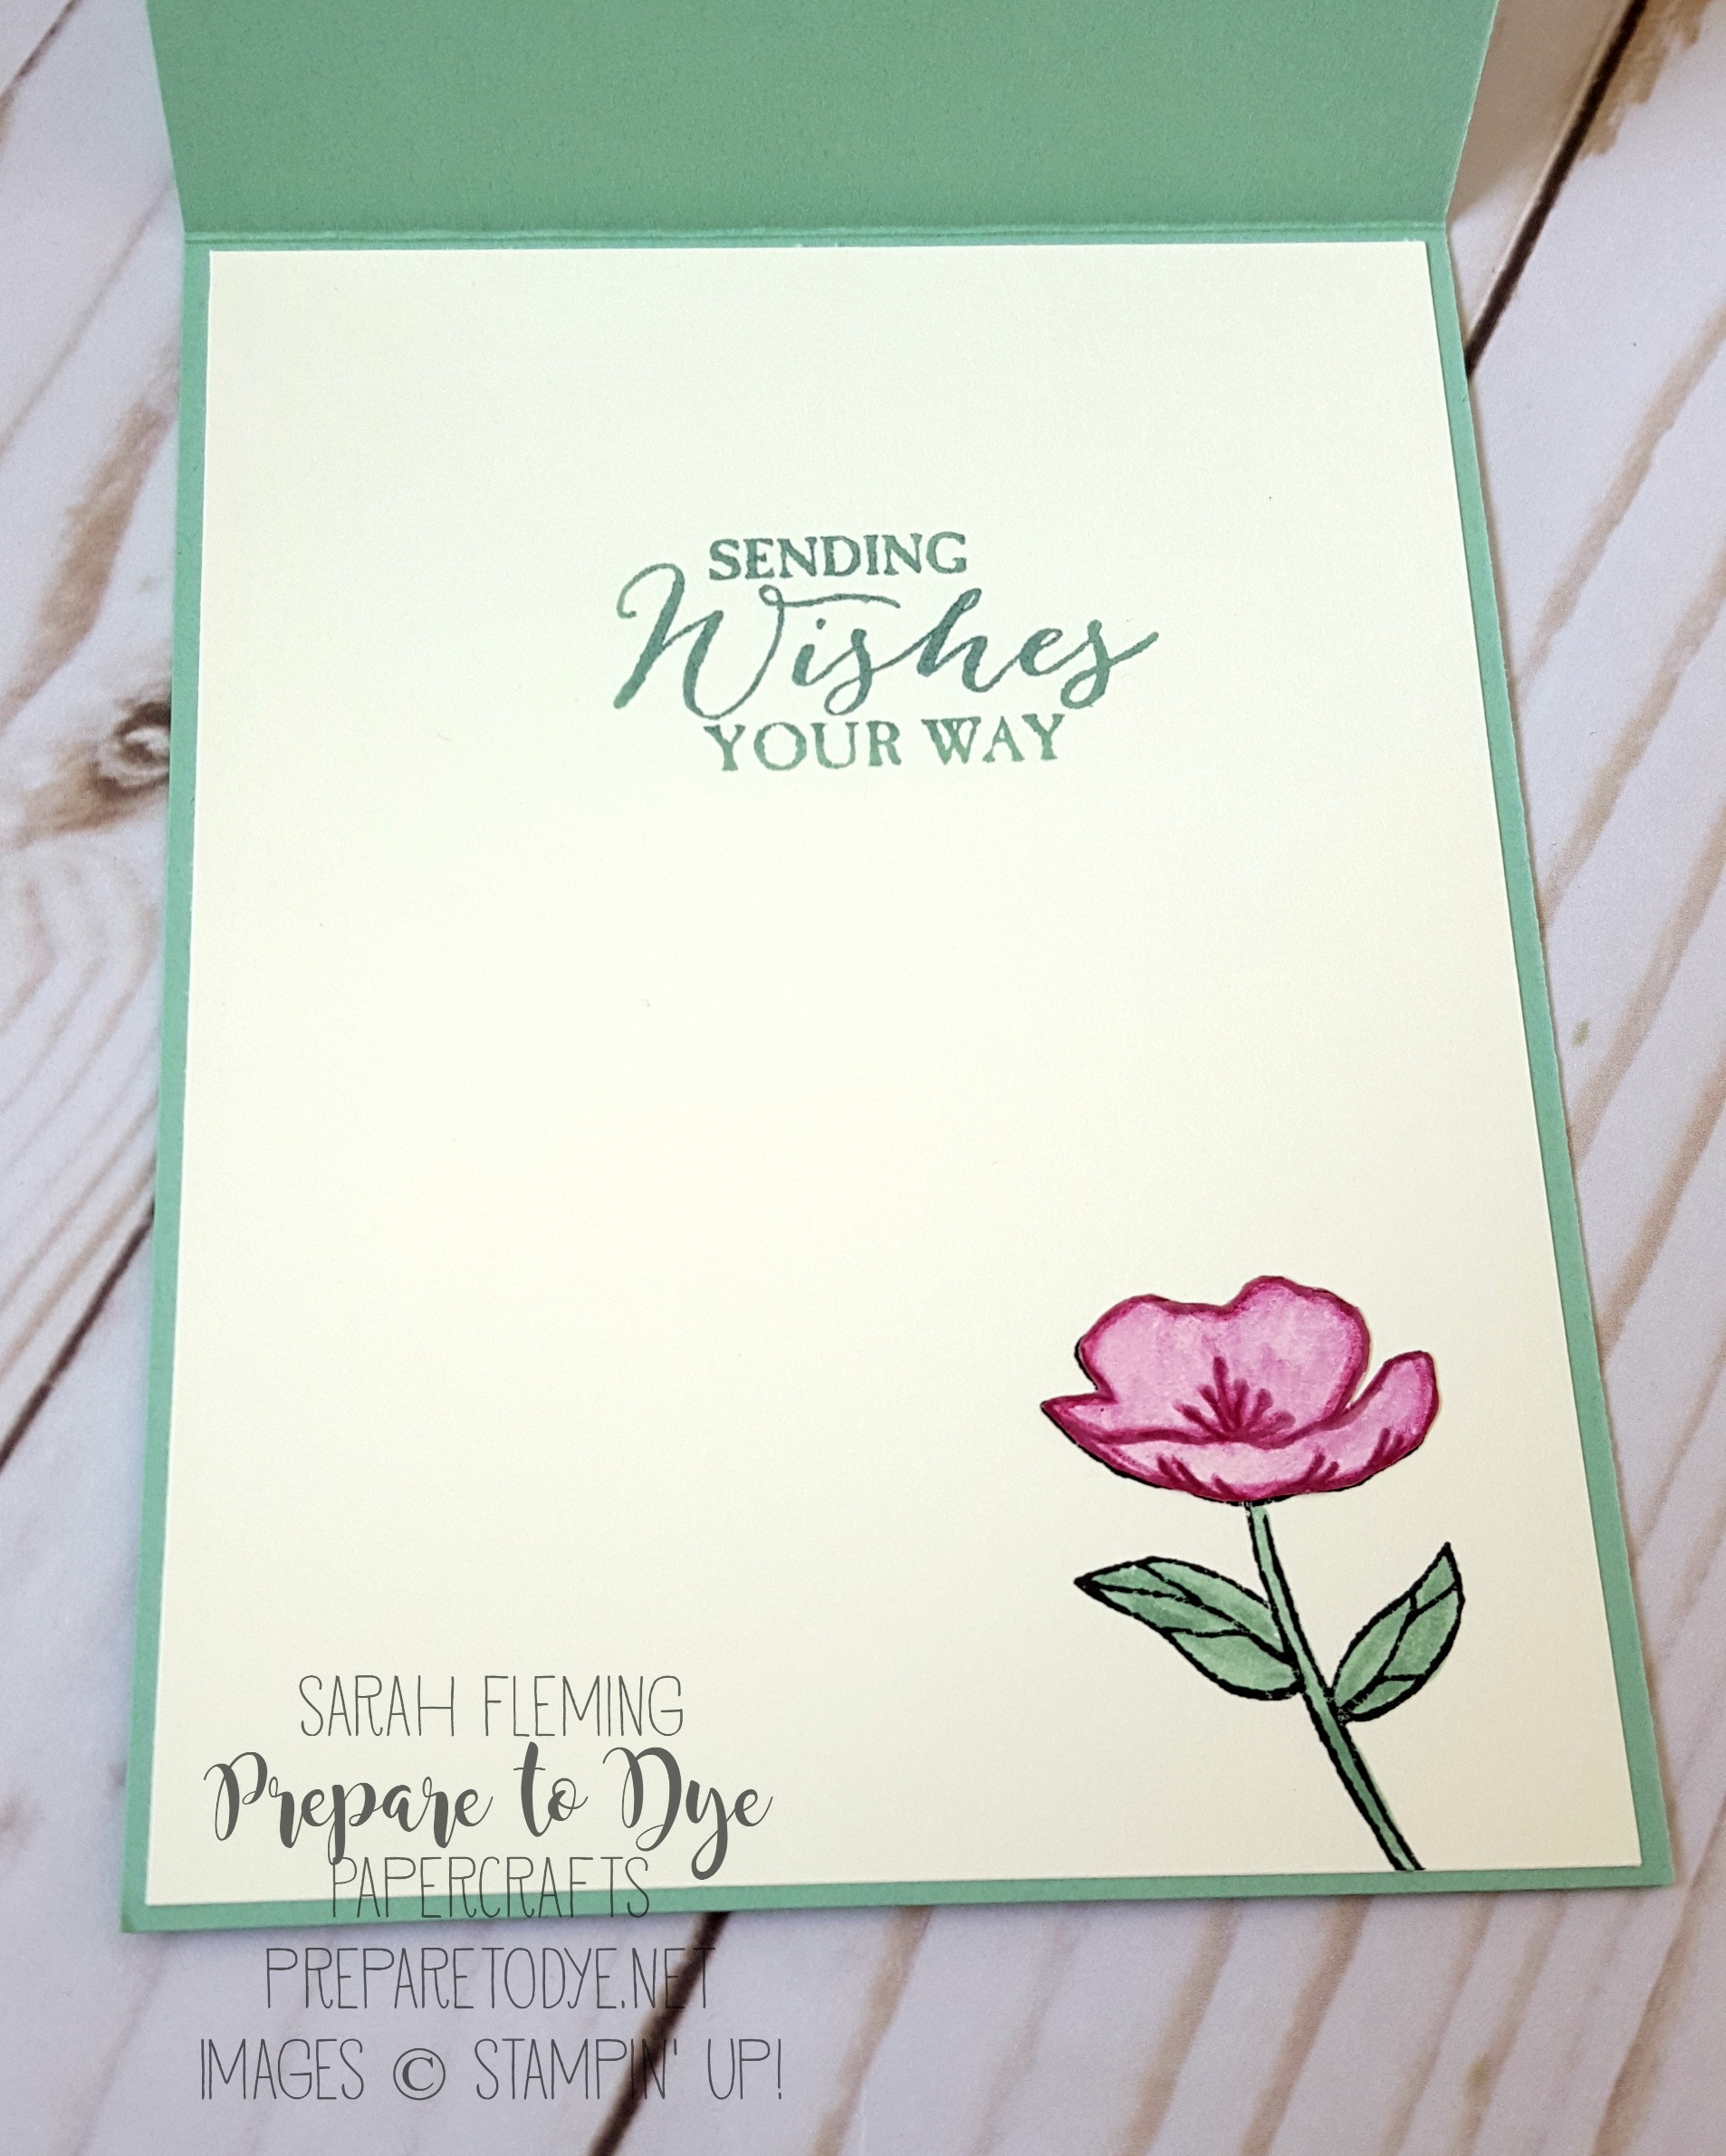 Stampin' Up! Butterfly Basics and Birthday Blooms handmade card with watercolor pencils and paper piecing - Sarah Fleming - Prepare to Dye Papercrafts - Kylie Bertucci's International Blog Highlights